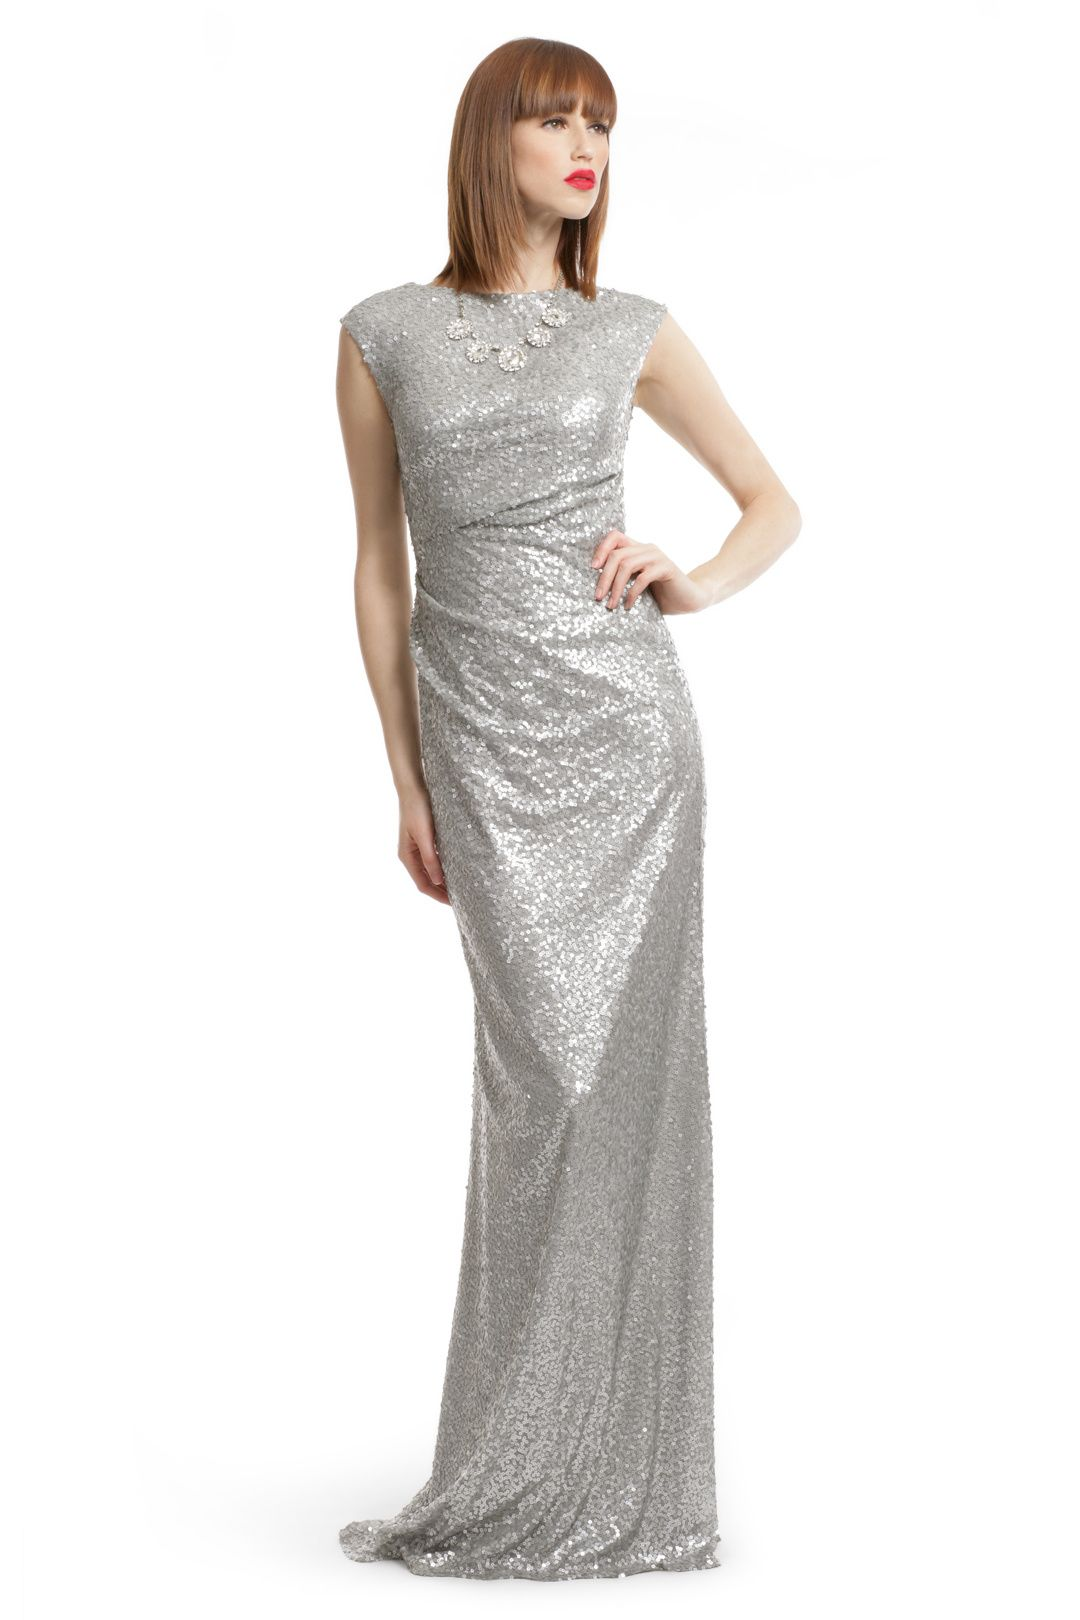 Silver or gray mother of the bride dresses david meister silver silver or gray mother of the bride dresses ombrellifo Images